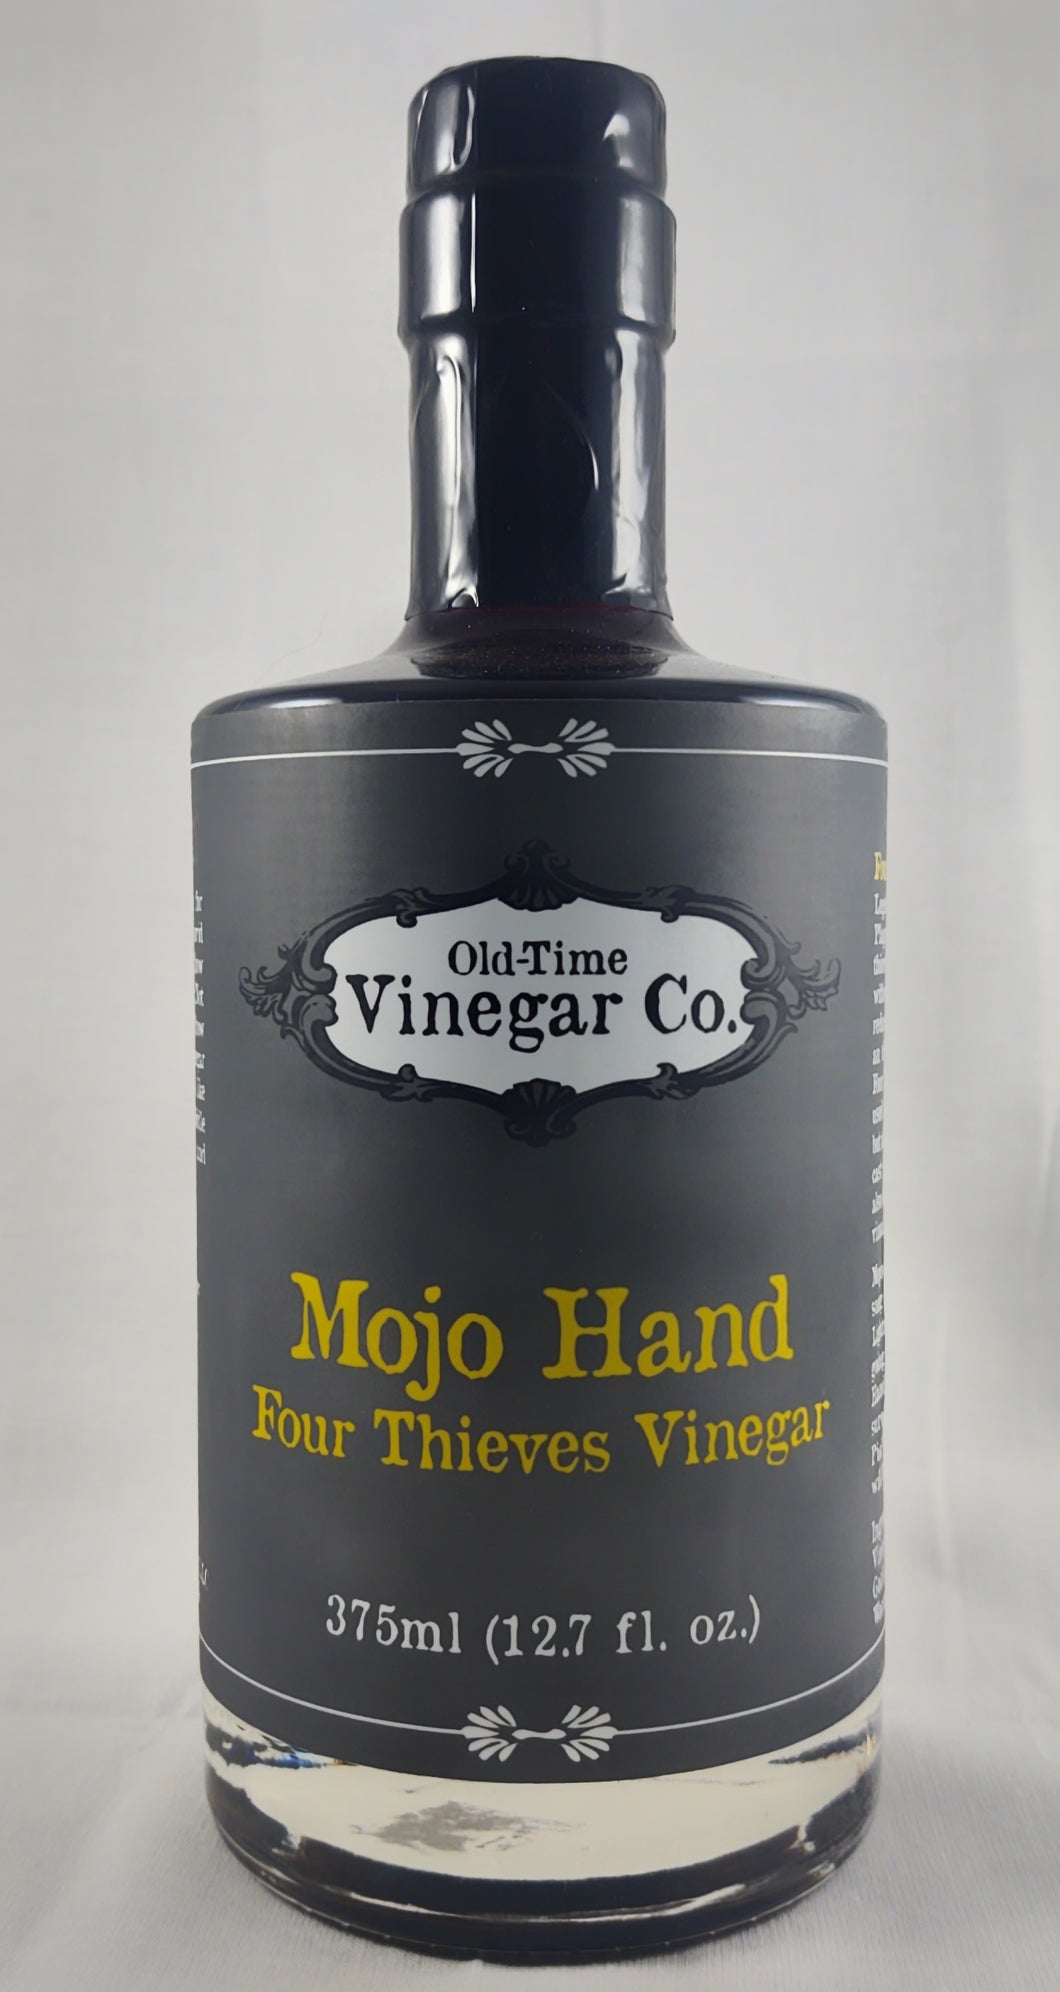 Mojo Hand Four Thieves Vinegar